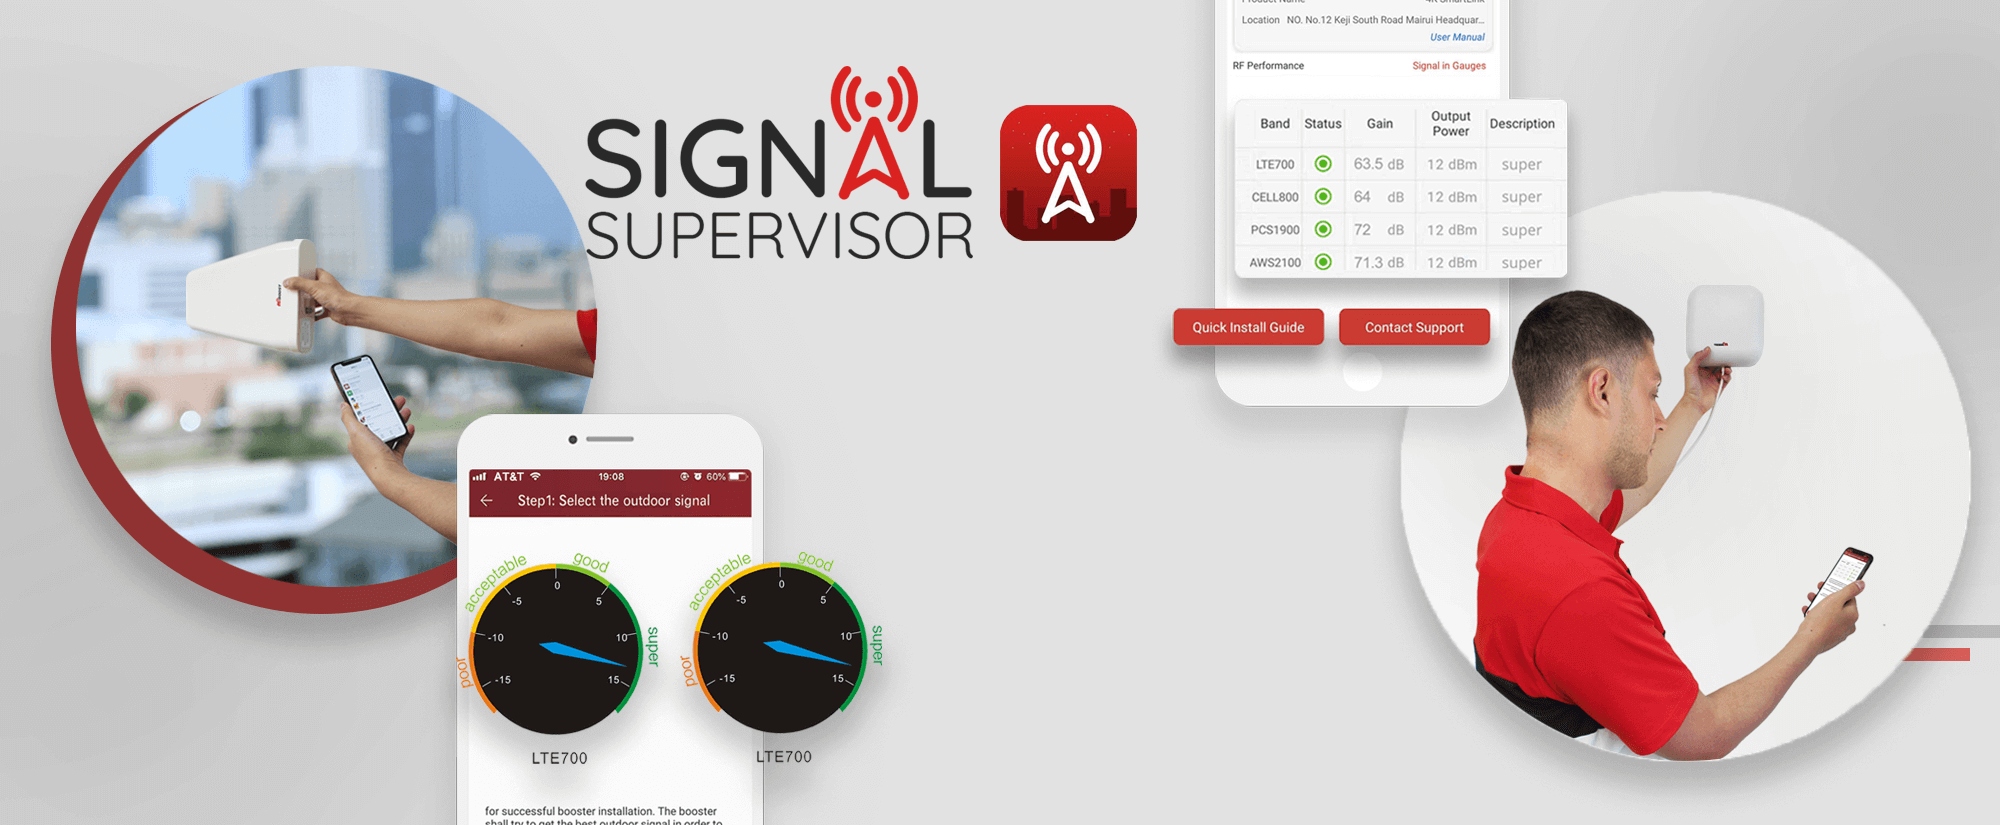 HiBoost Cell Phone Signal Booster-Signal Supervisor1